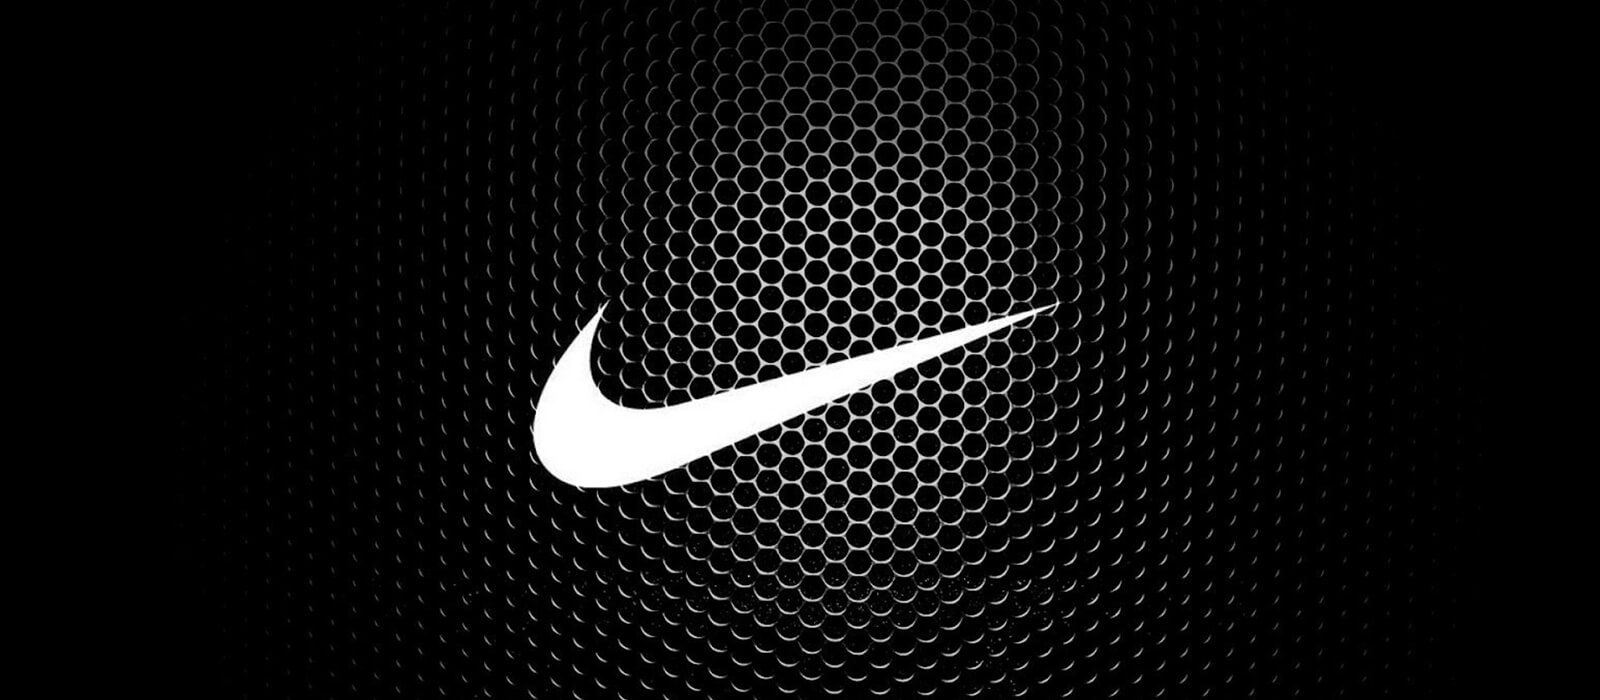 Nike Wants Your Business, But … Nike logo wallpapers